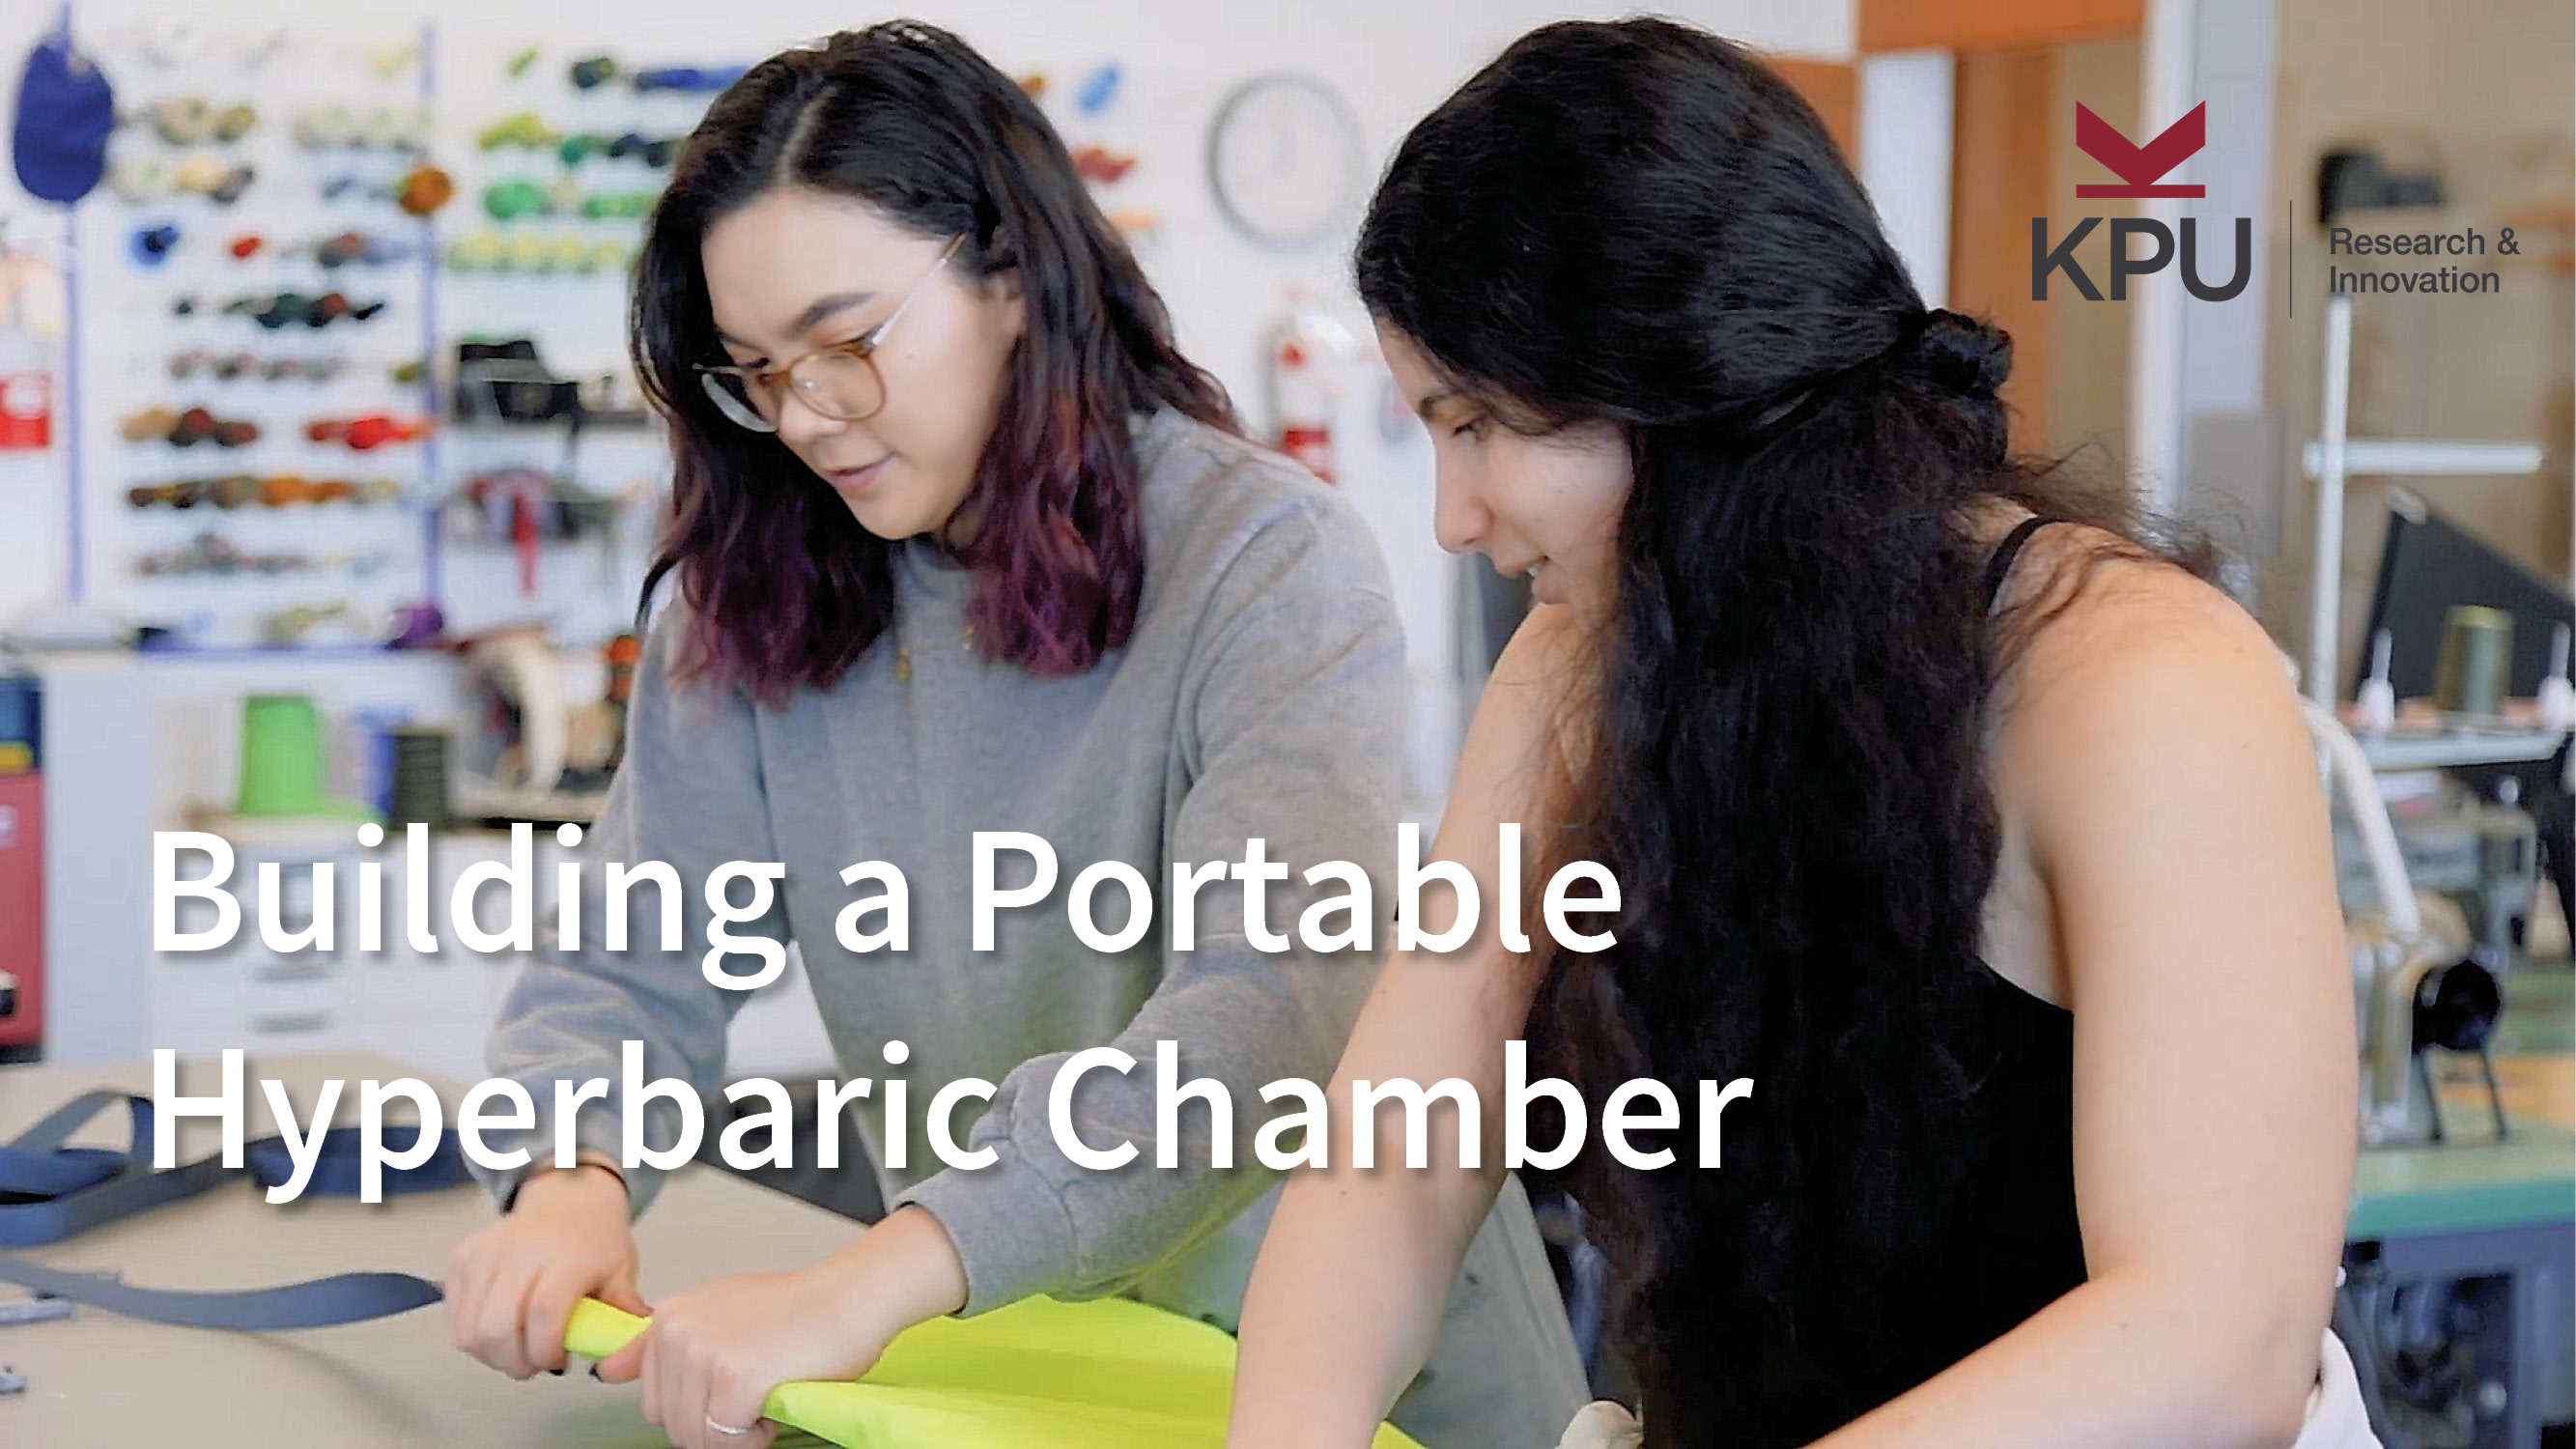 wsod hyperbaric chamber project video thumbnail